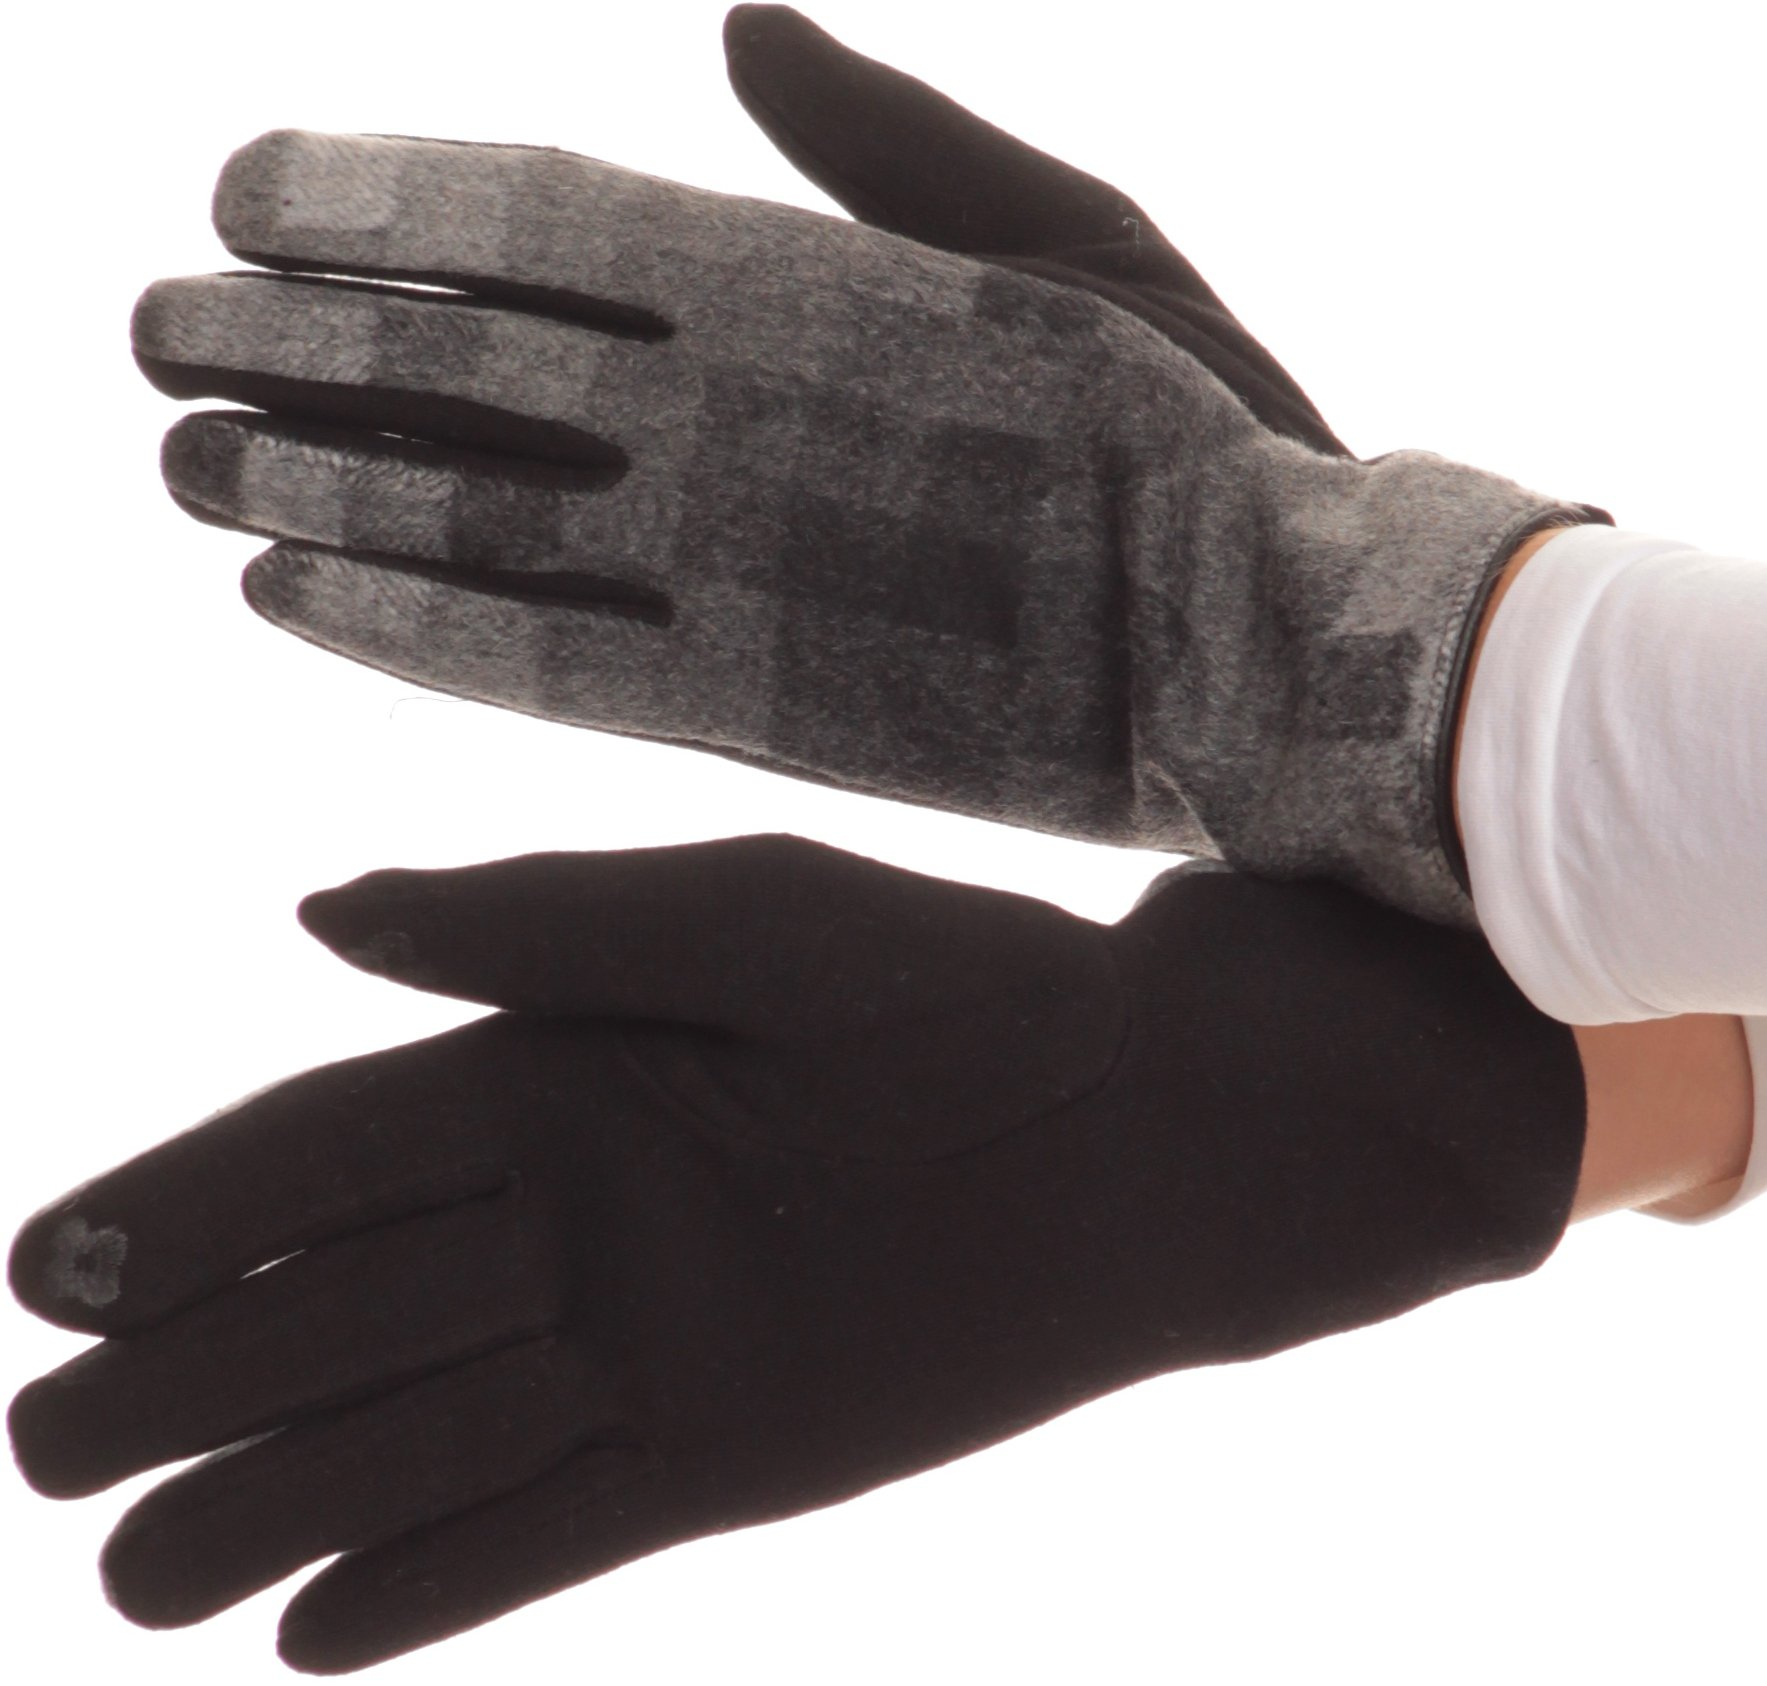 Sakkas 16168 - Kade Pixel Ombre Multi Colored Patterned Warm Touch Screen Winter Gloves - Black - S/M